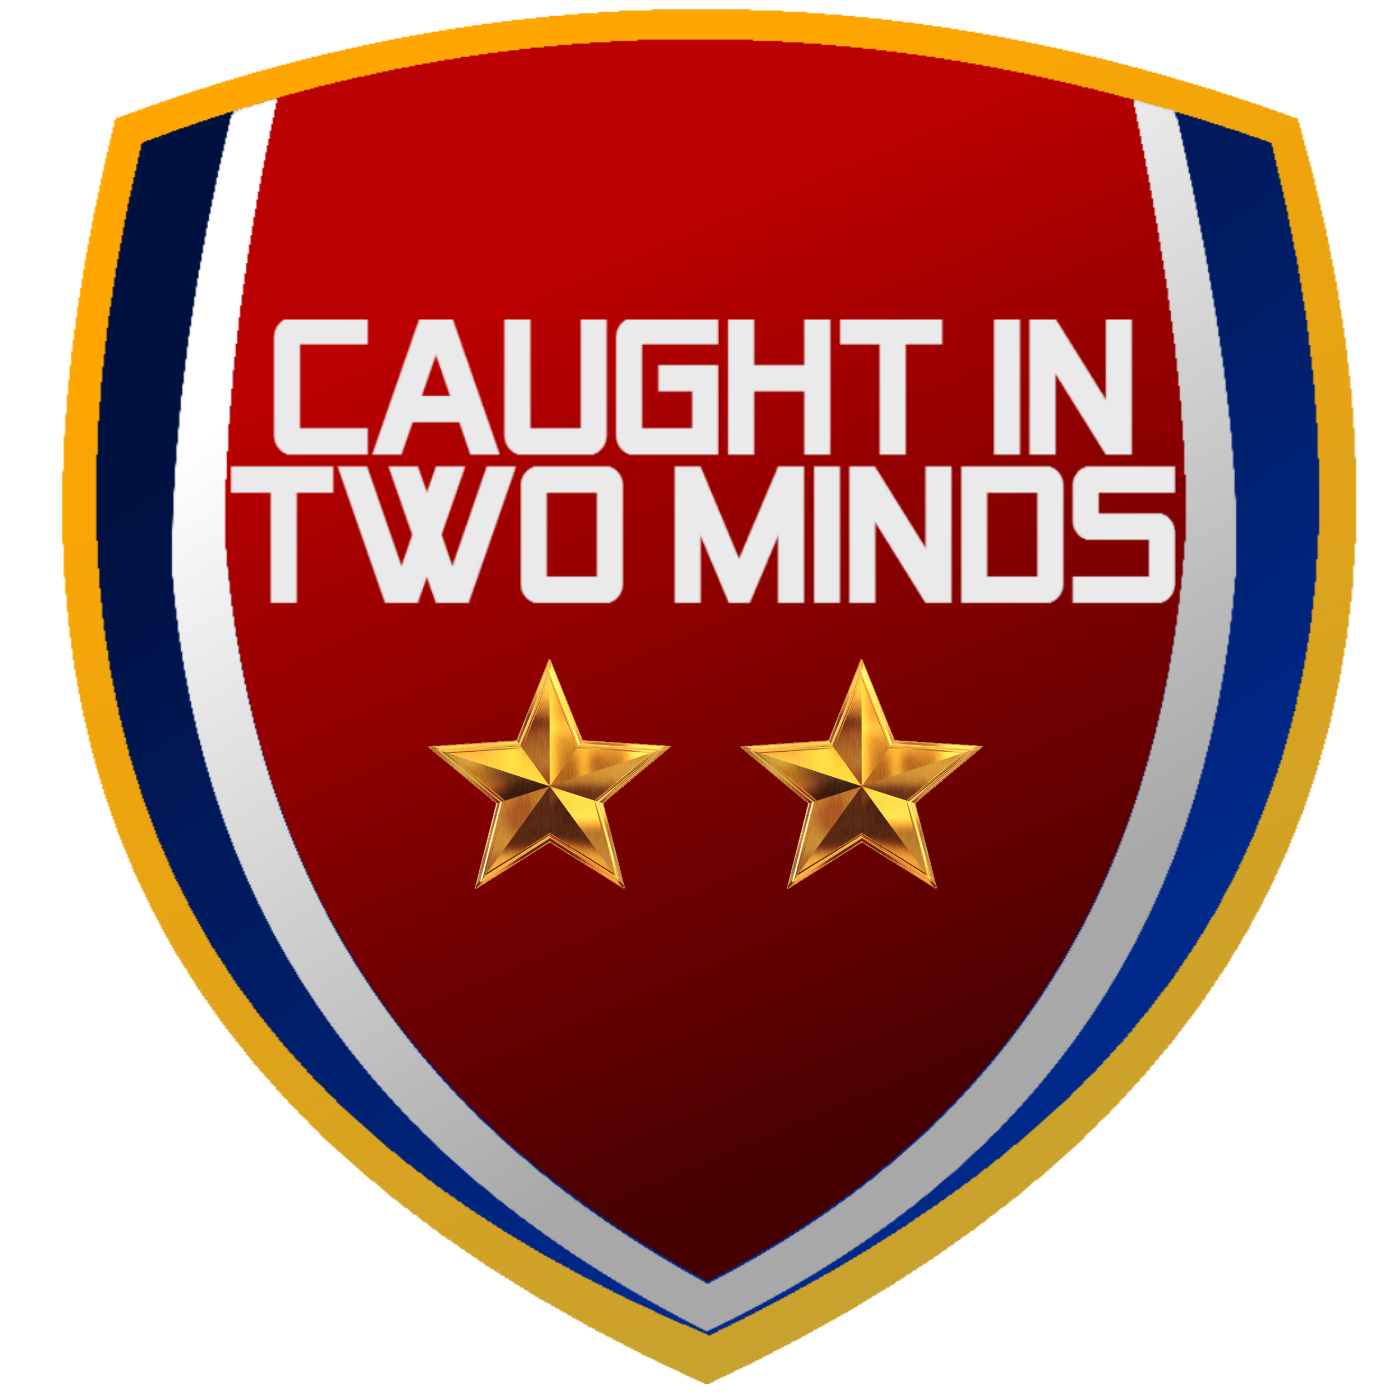 17 - Caught In Two Minds